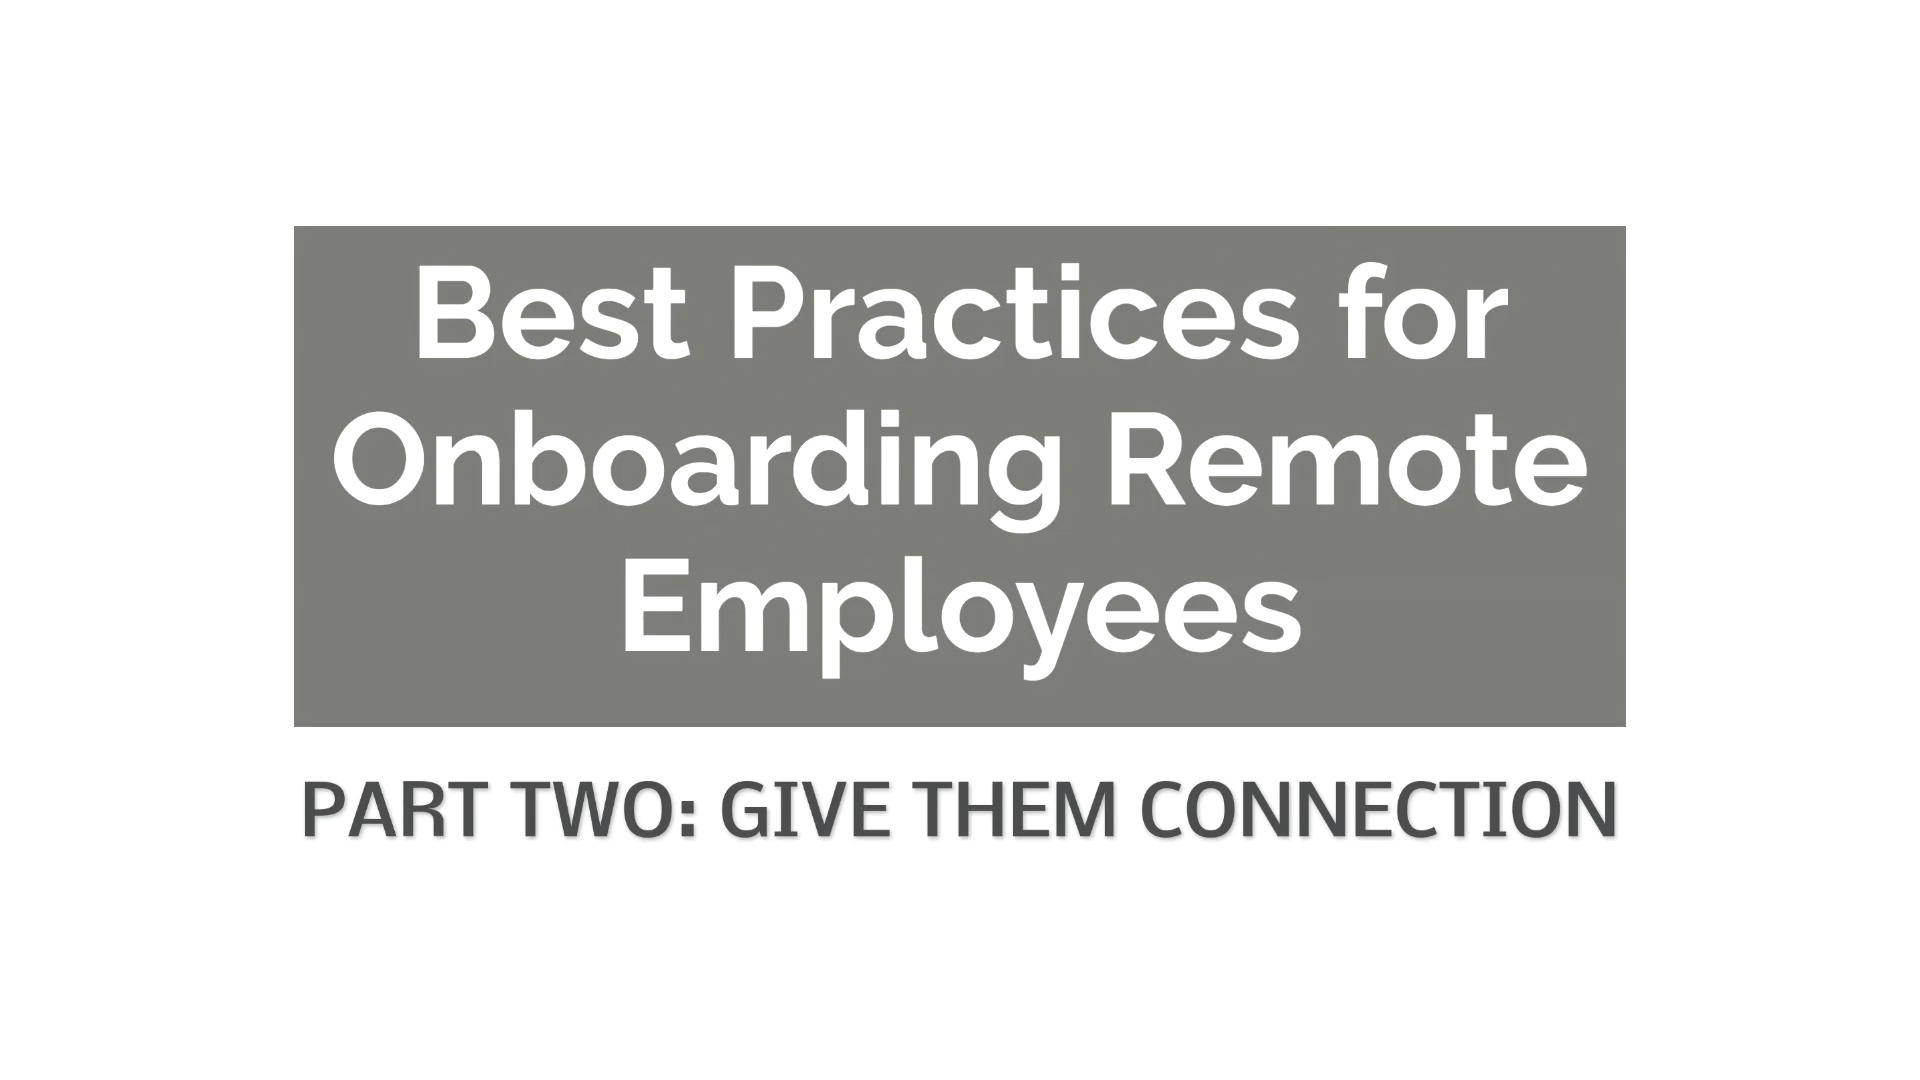 Onboarding new employees remotely: Giving connection